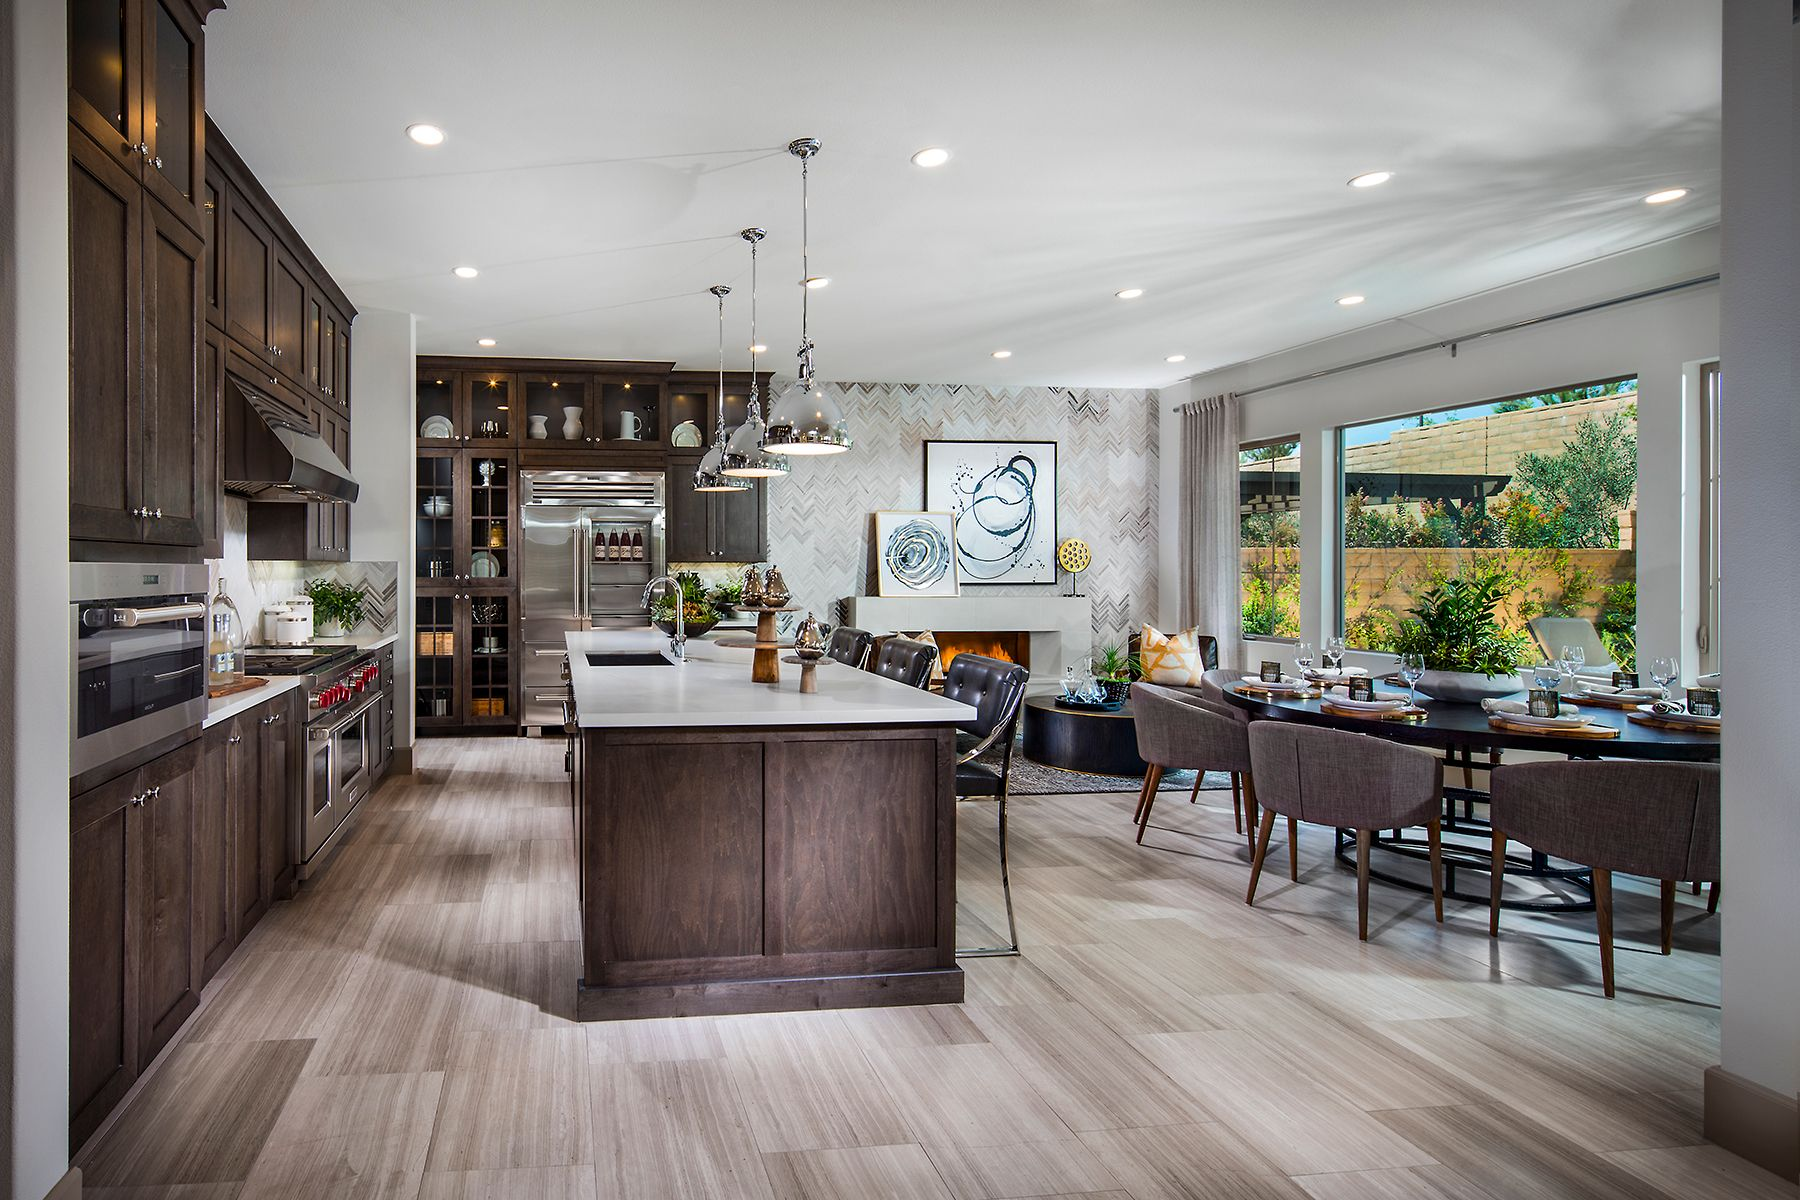 Padova At Orchard Hills In Irvine, CA, New Homes U0026 Floor Plans By Shea Homes    Family